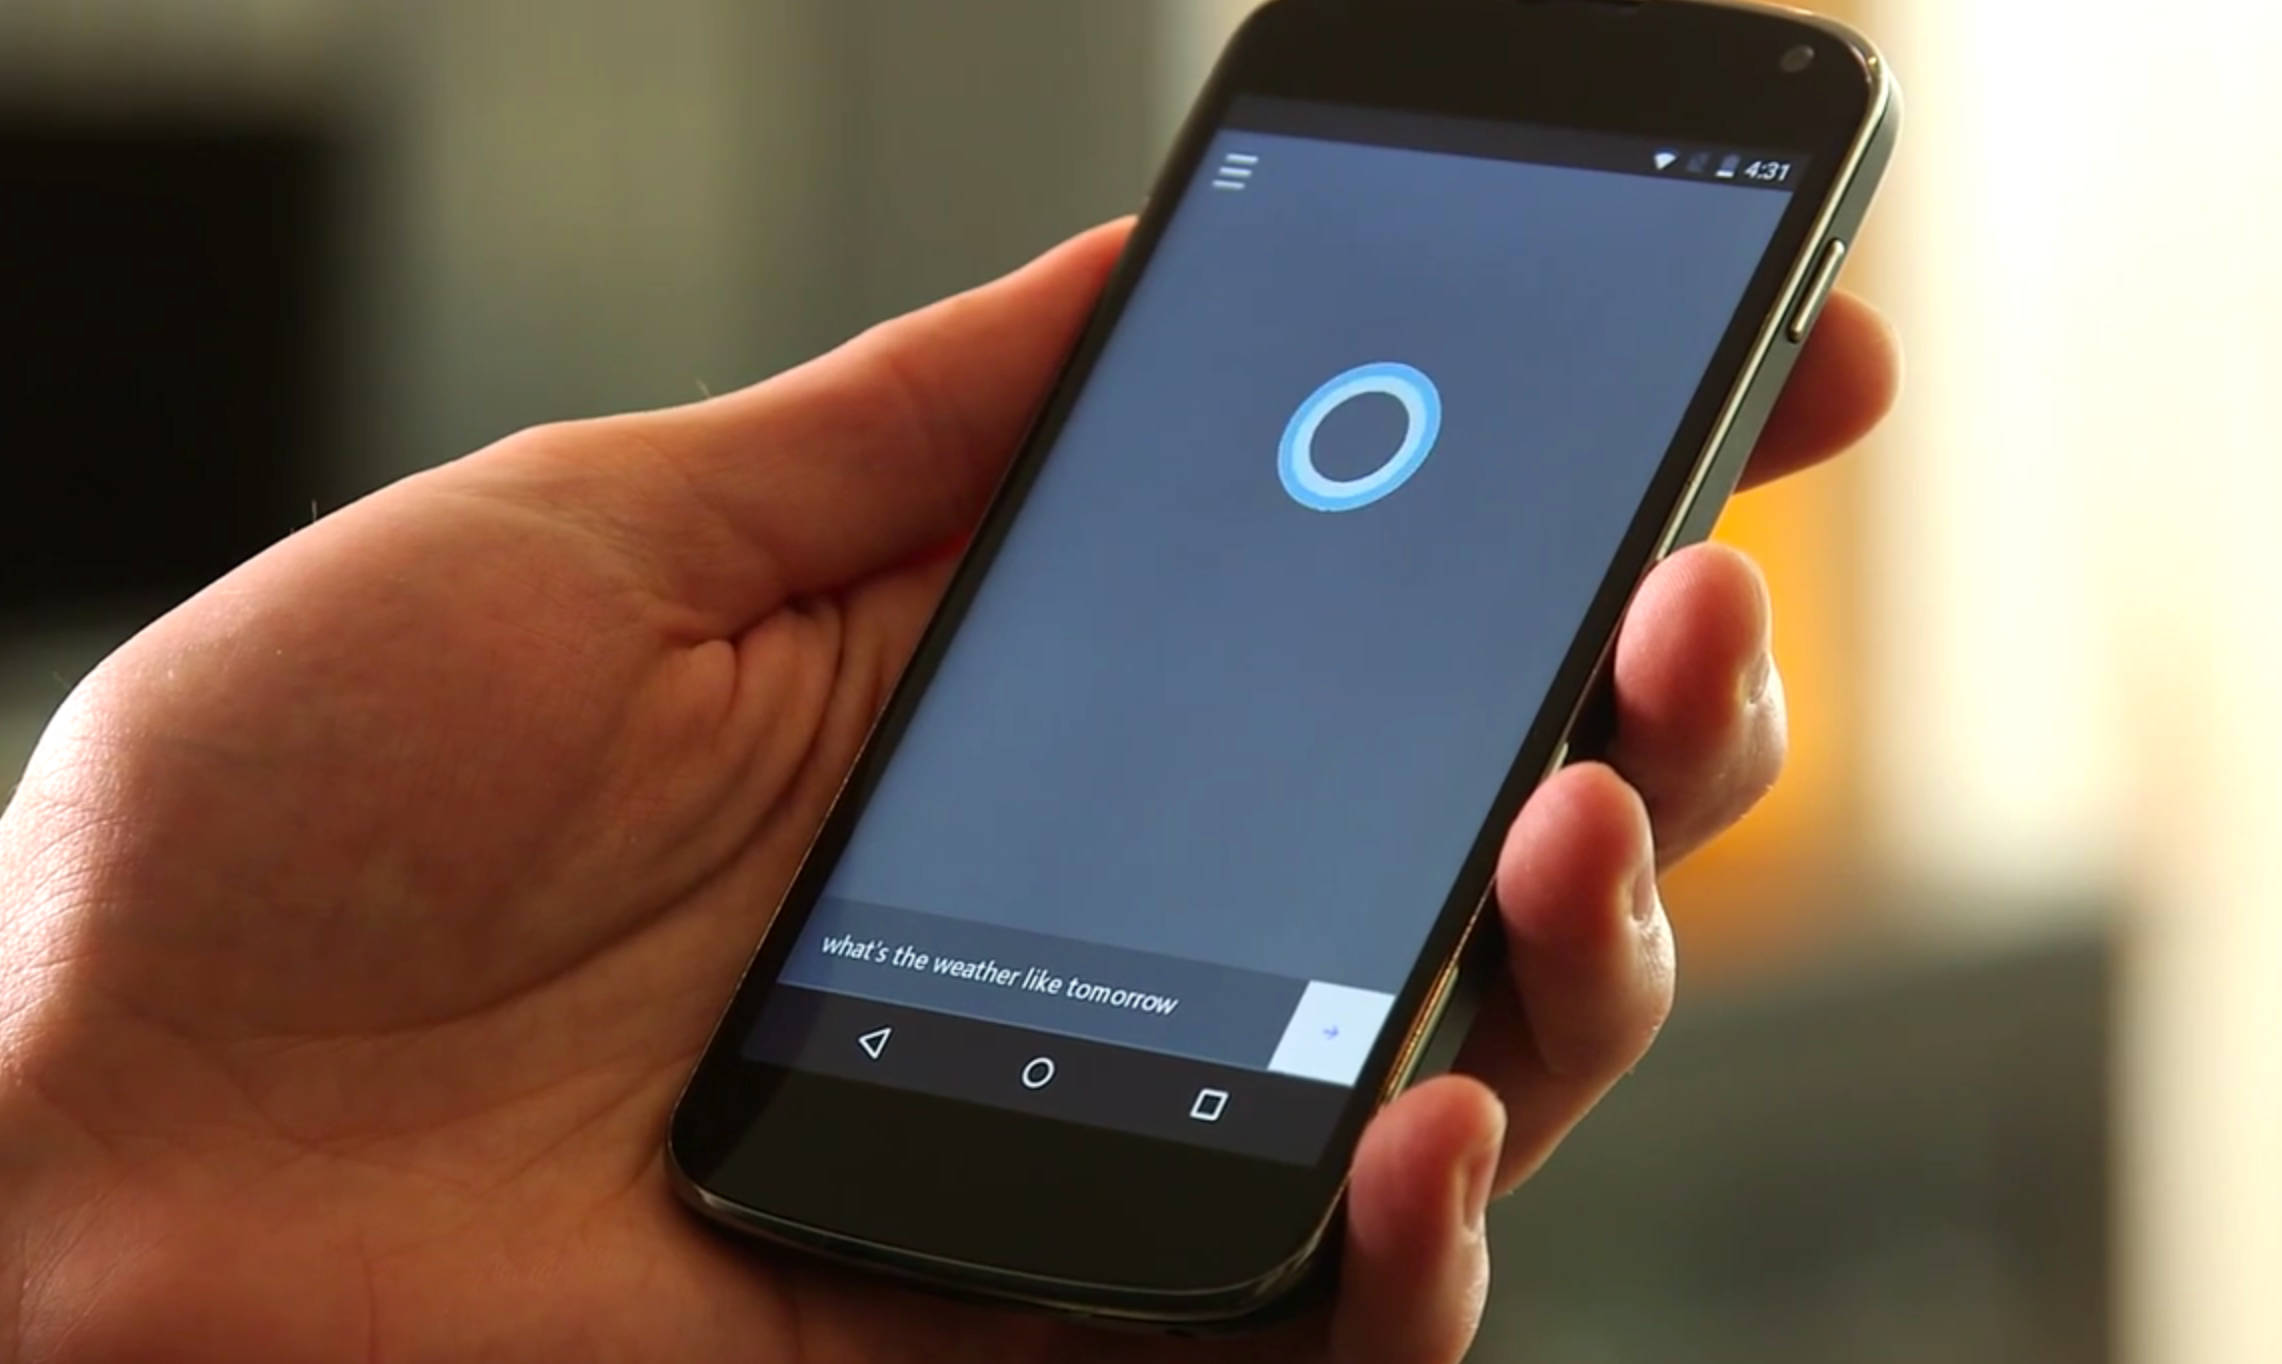 Microsoft Cortana Amazon Alexa Asystent Google